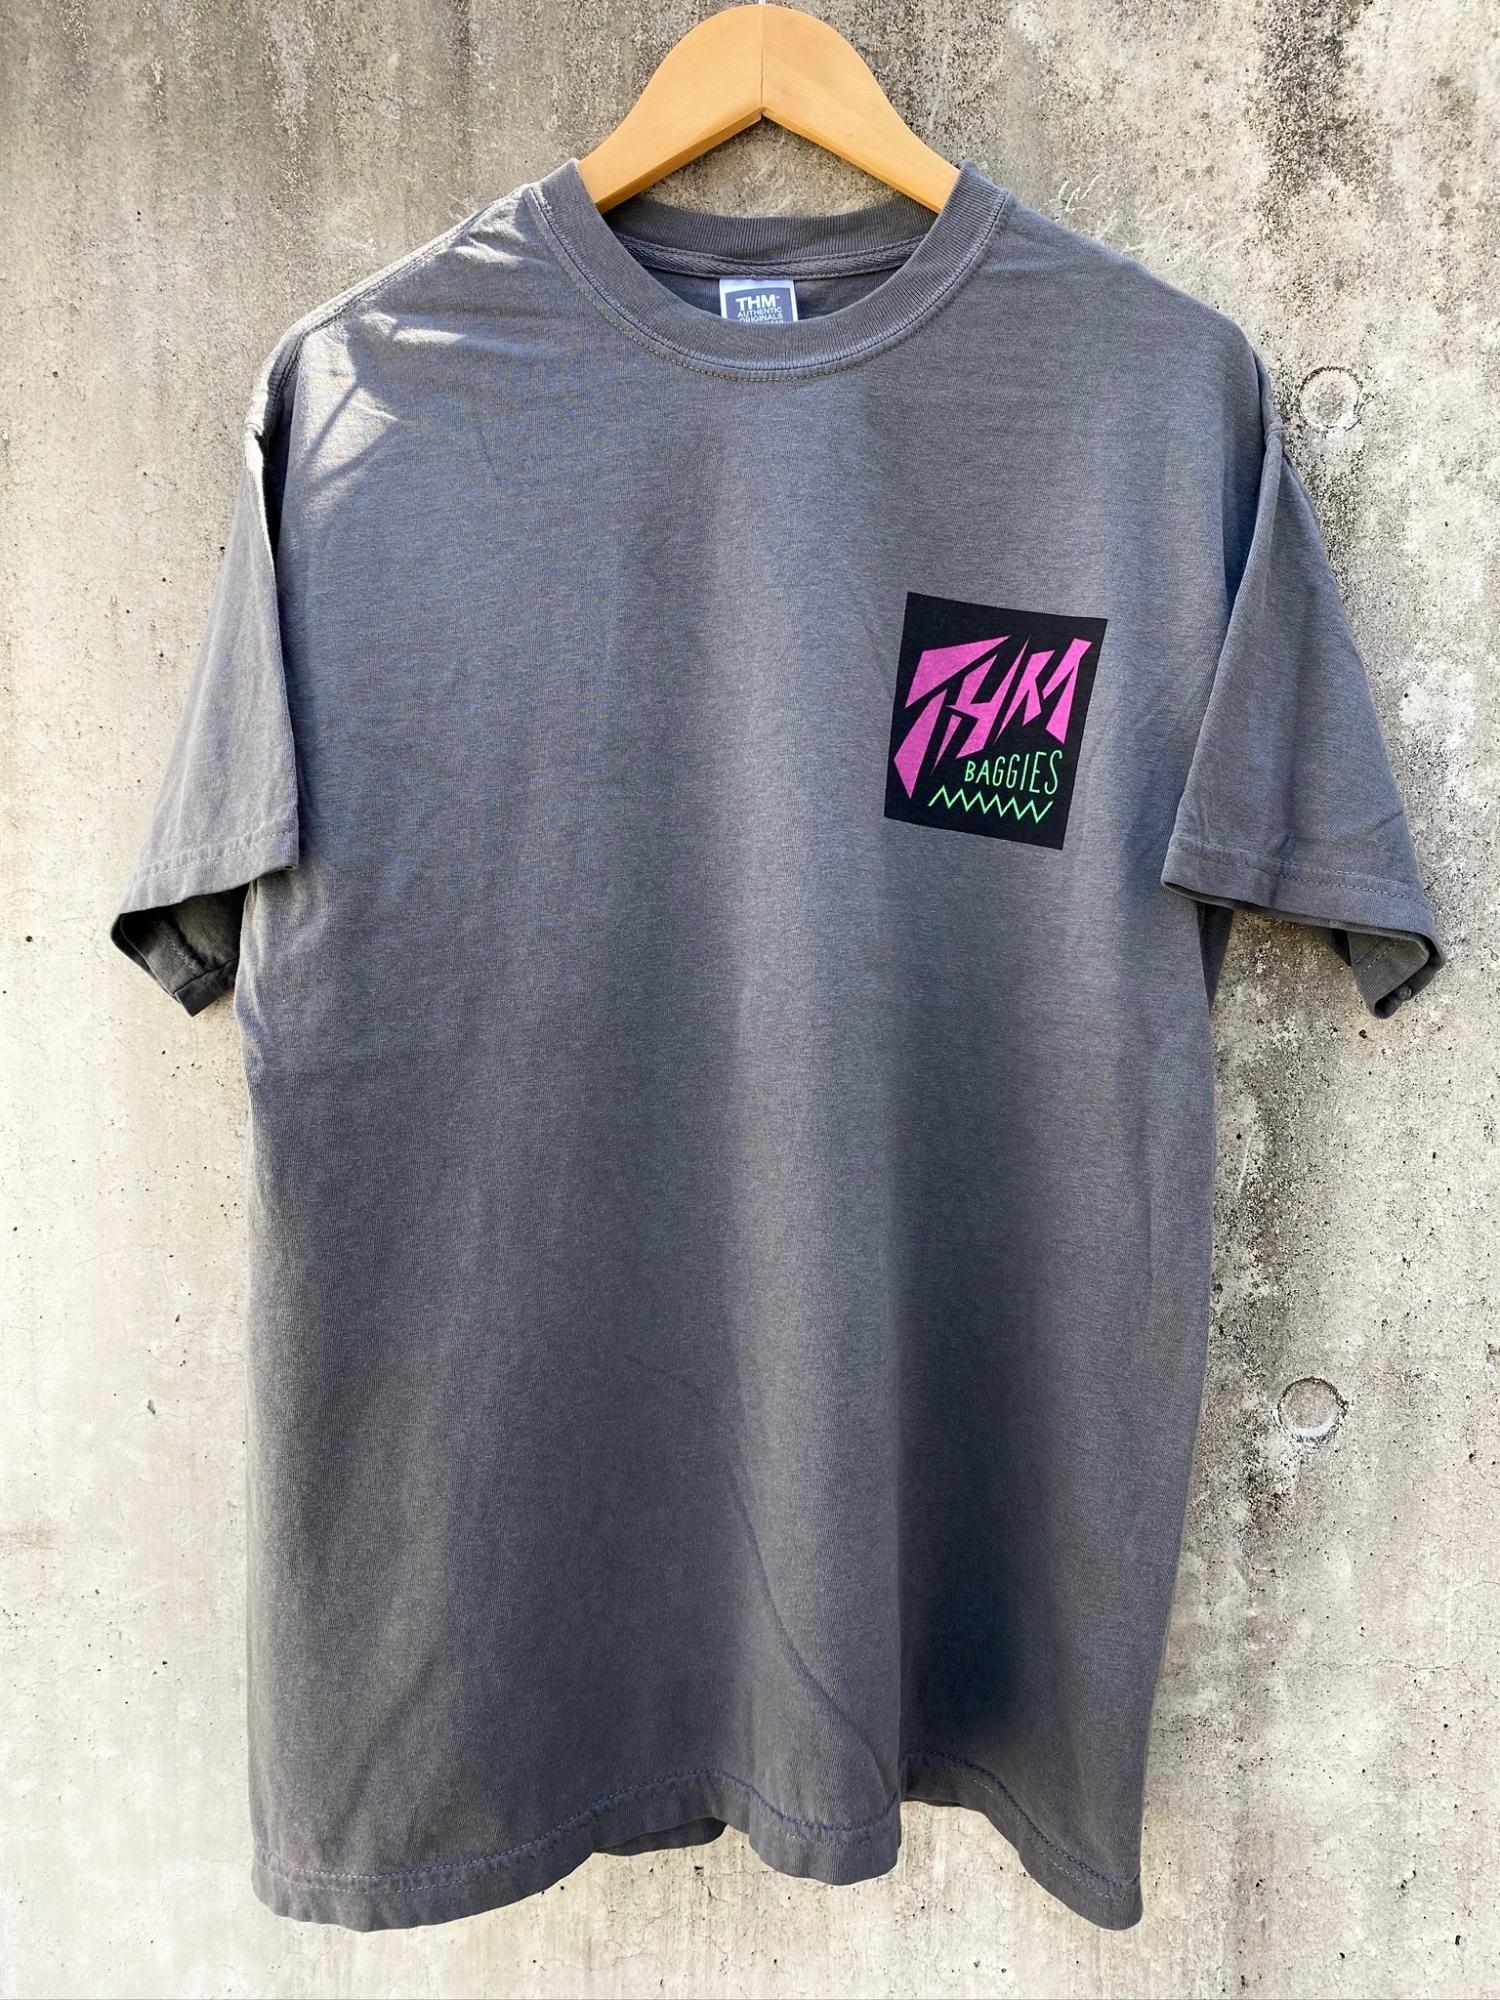 [THE HARD MAN] THM BAGGIES S/S tee チャコール